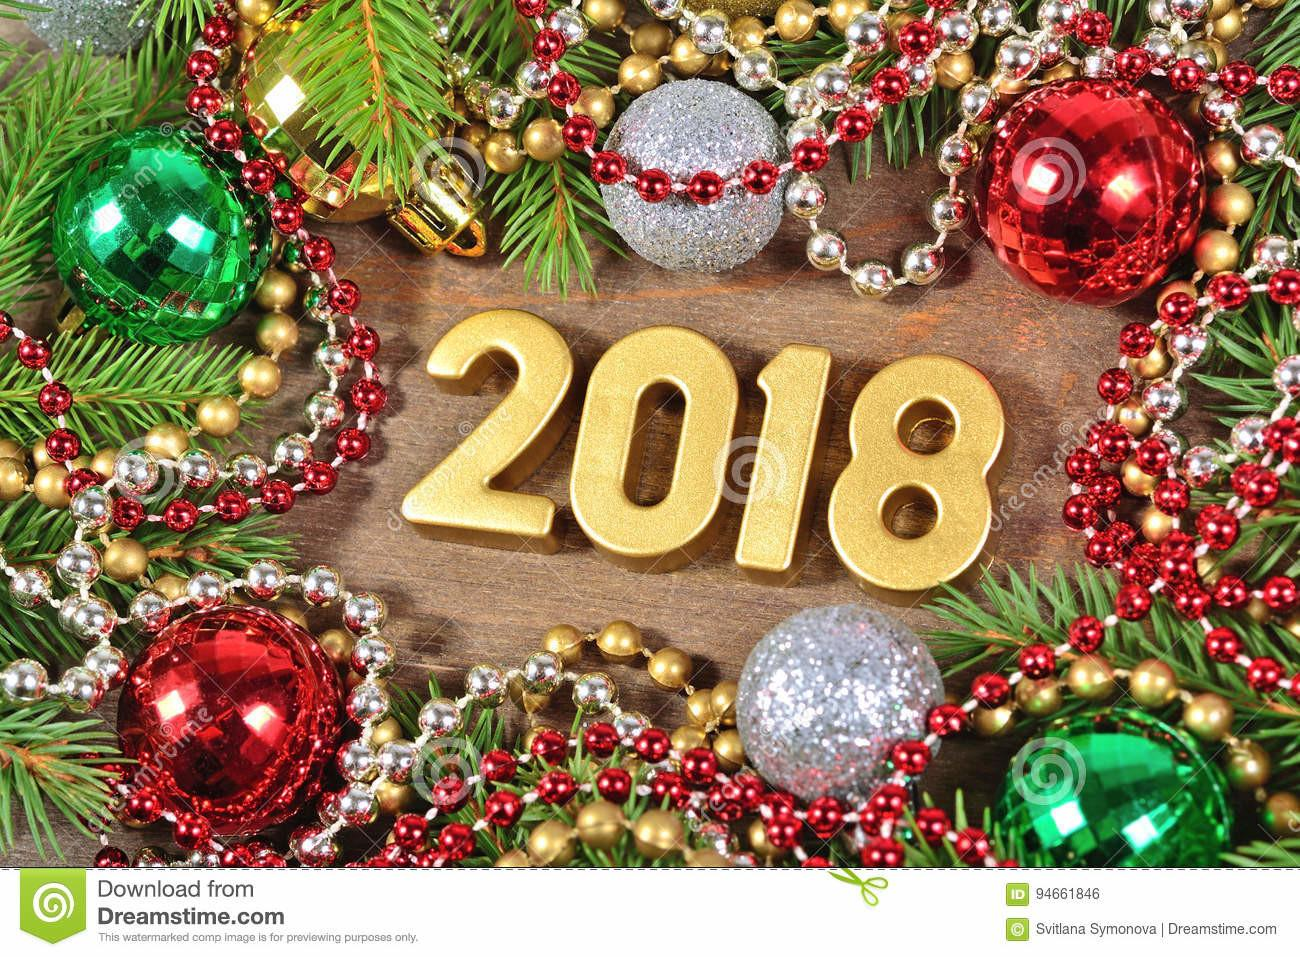 2018 Year Golden Figures Christmas Decorations Stock